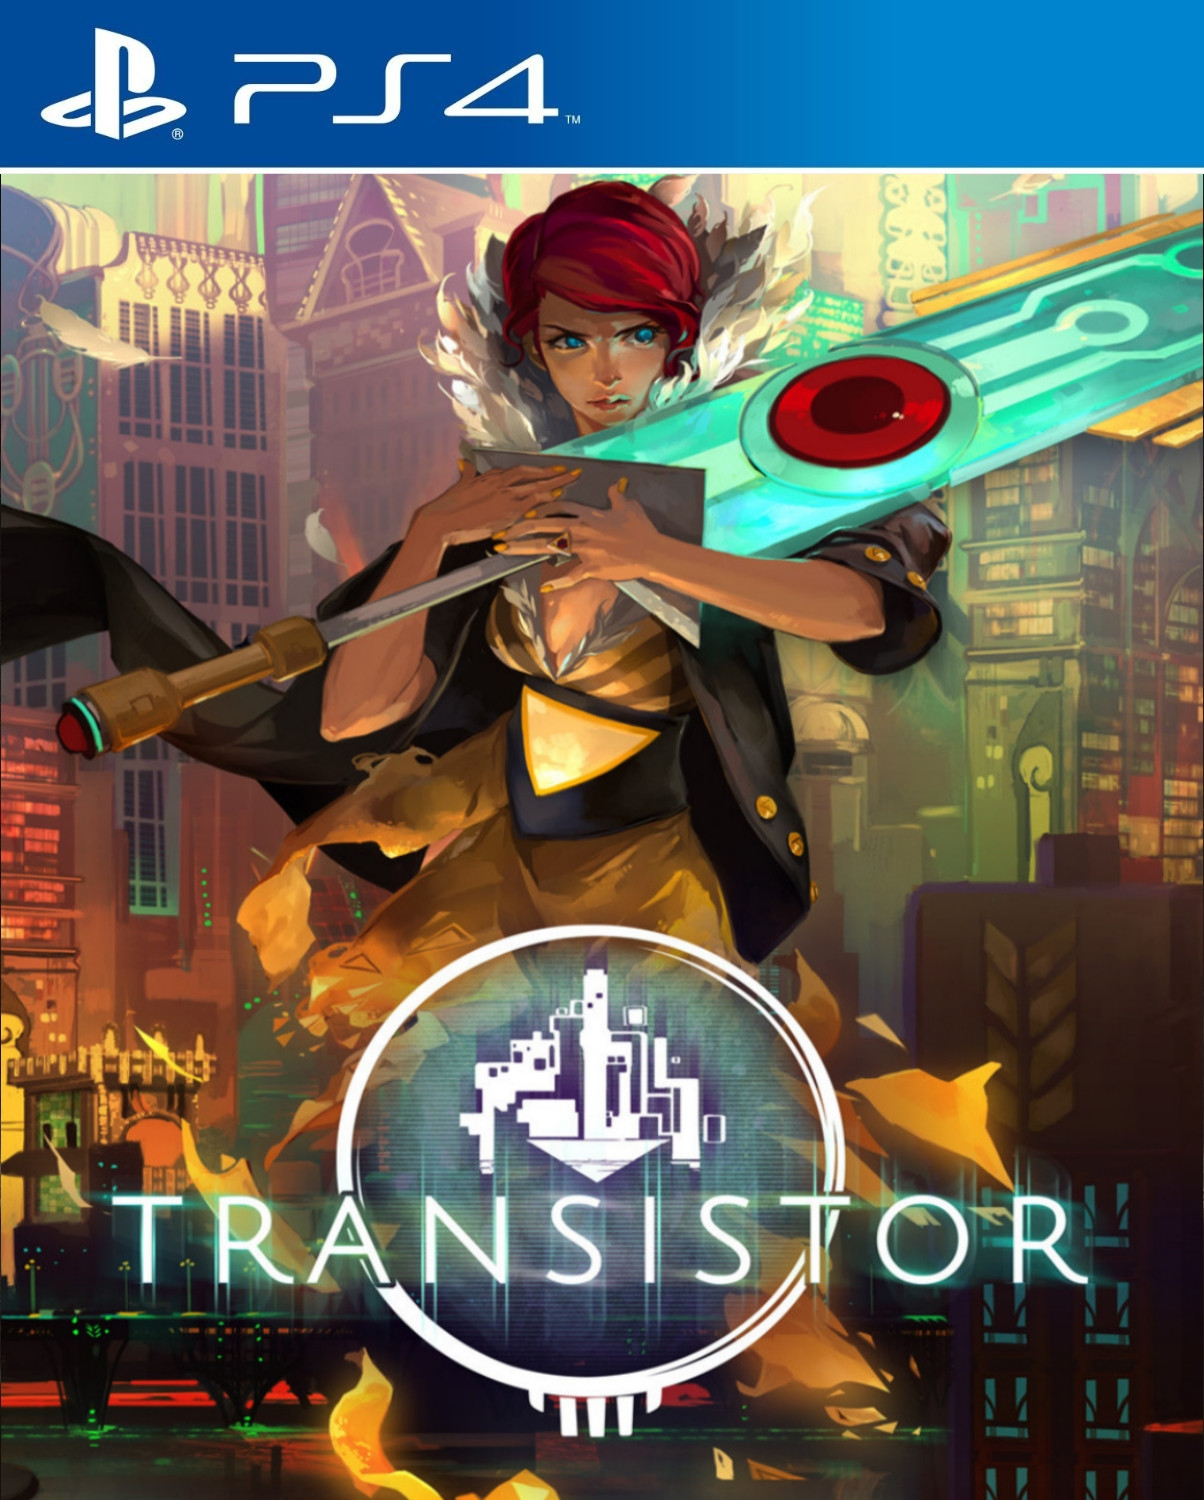 This custom Transistor art is absolutely gorgeous